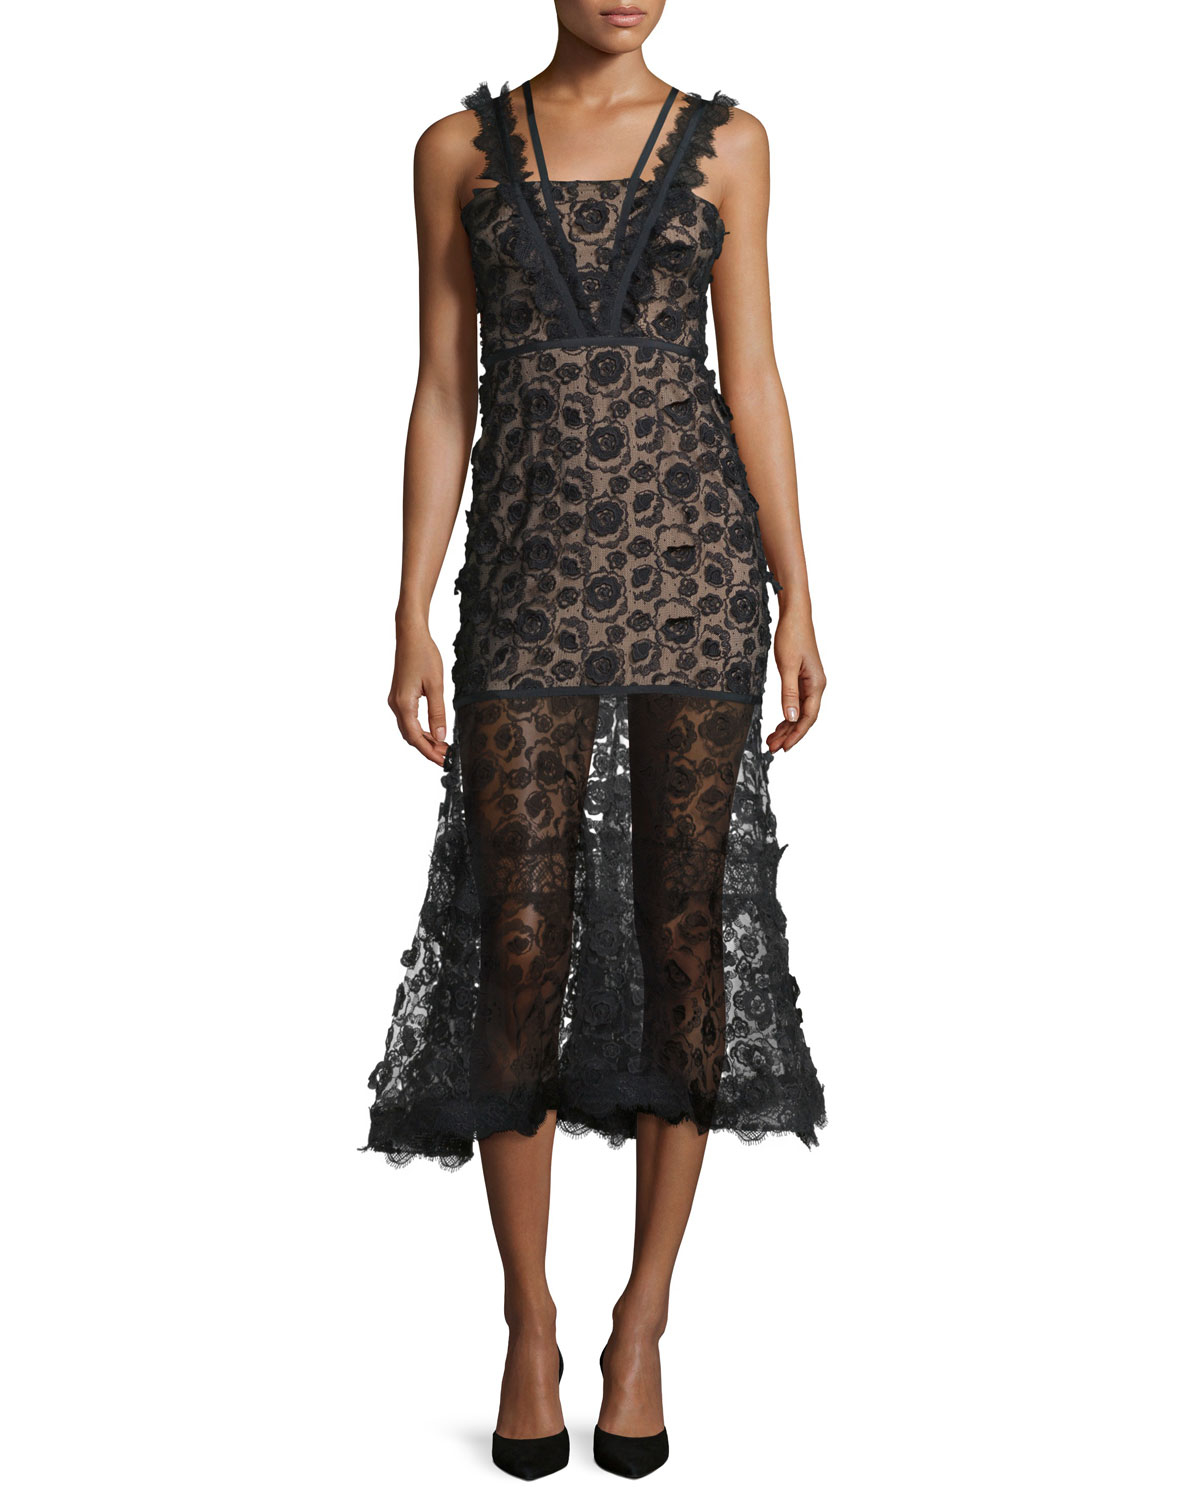 Alexis lorelle sleeveless embroidered lace crepe midi dress in black